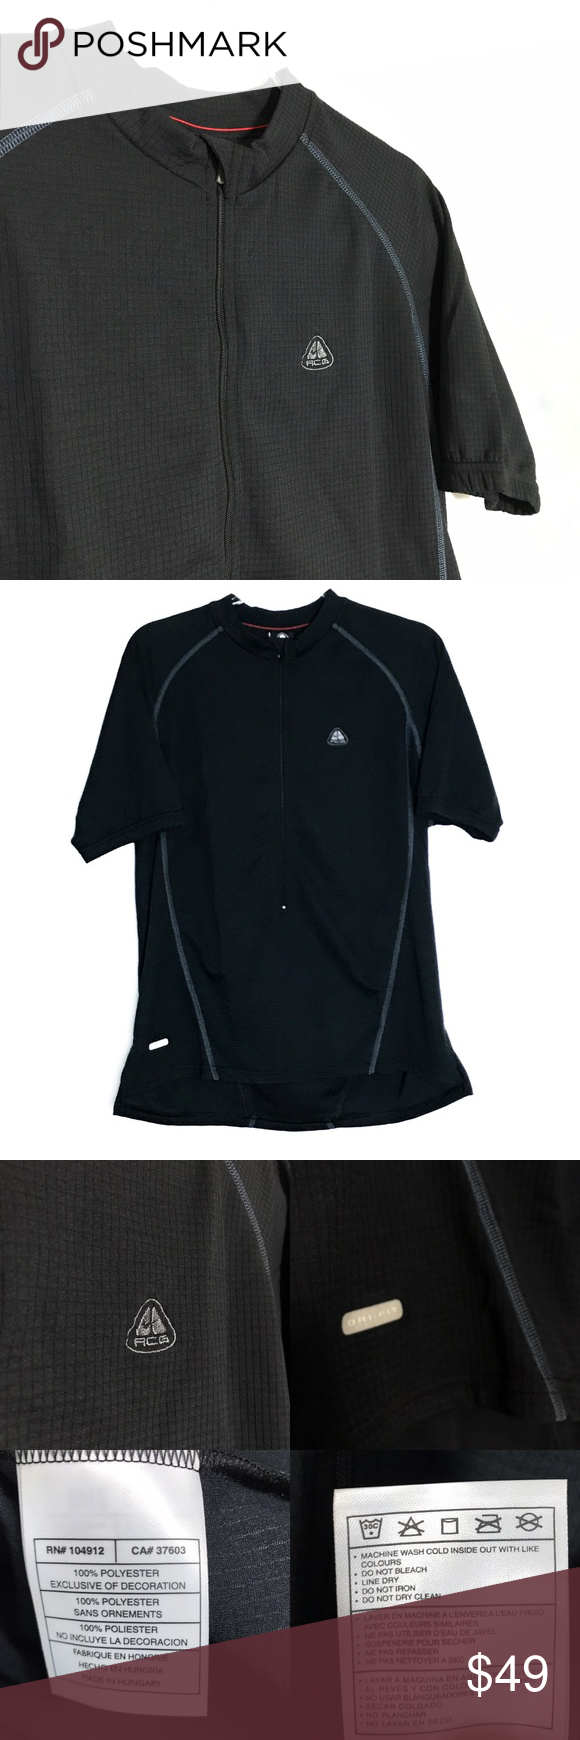 8b443e15c Nike ACG Dri-Fit Short Sleeve Cycling Jersey  310 ▫ New with tags NWT Nike ACG  apparel and accessories are designed for outdoor athletes who demand ...